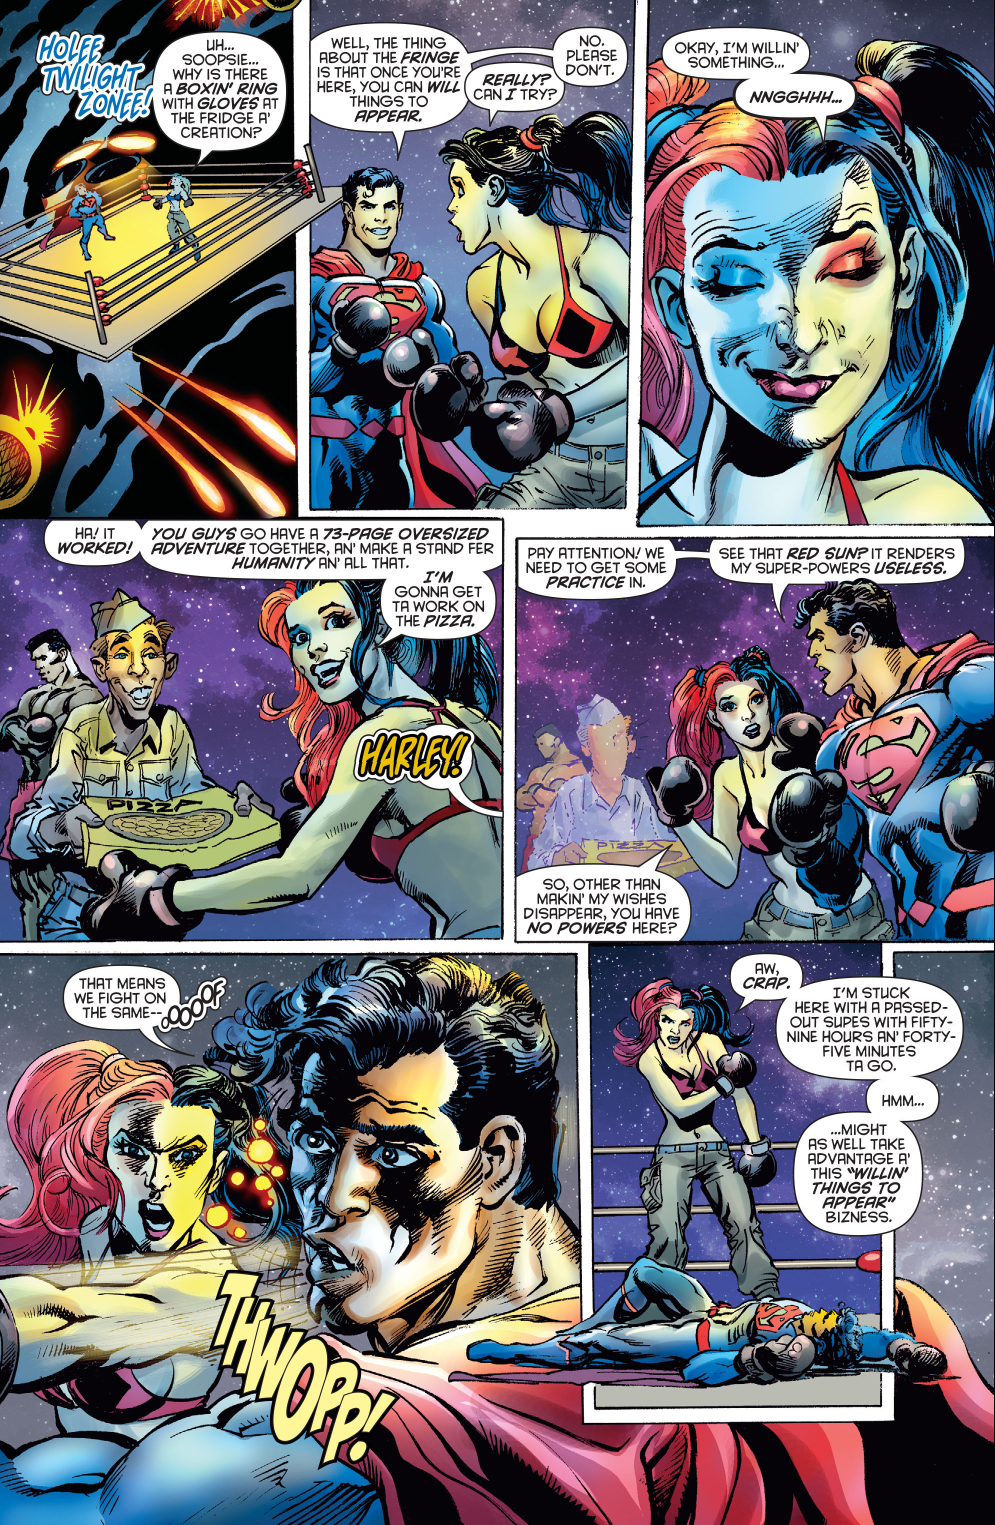 harley-quinn-knocks-out-superman